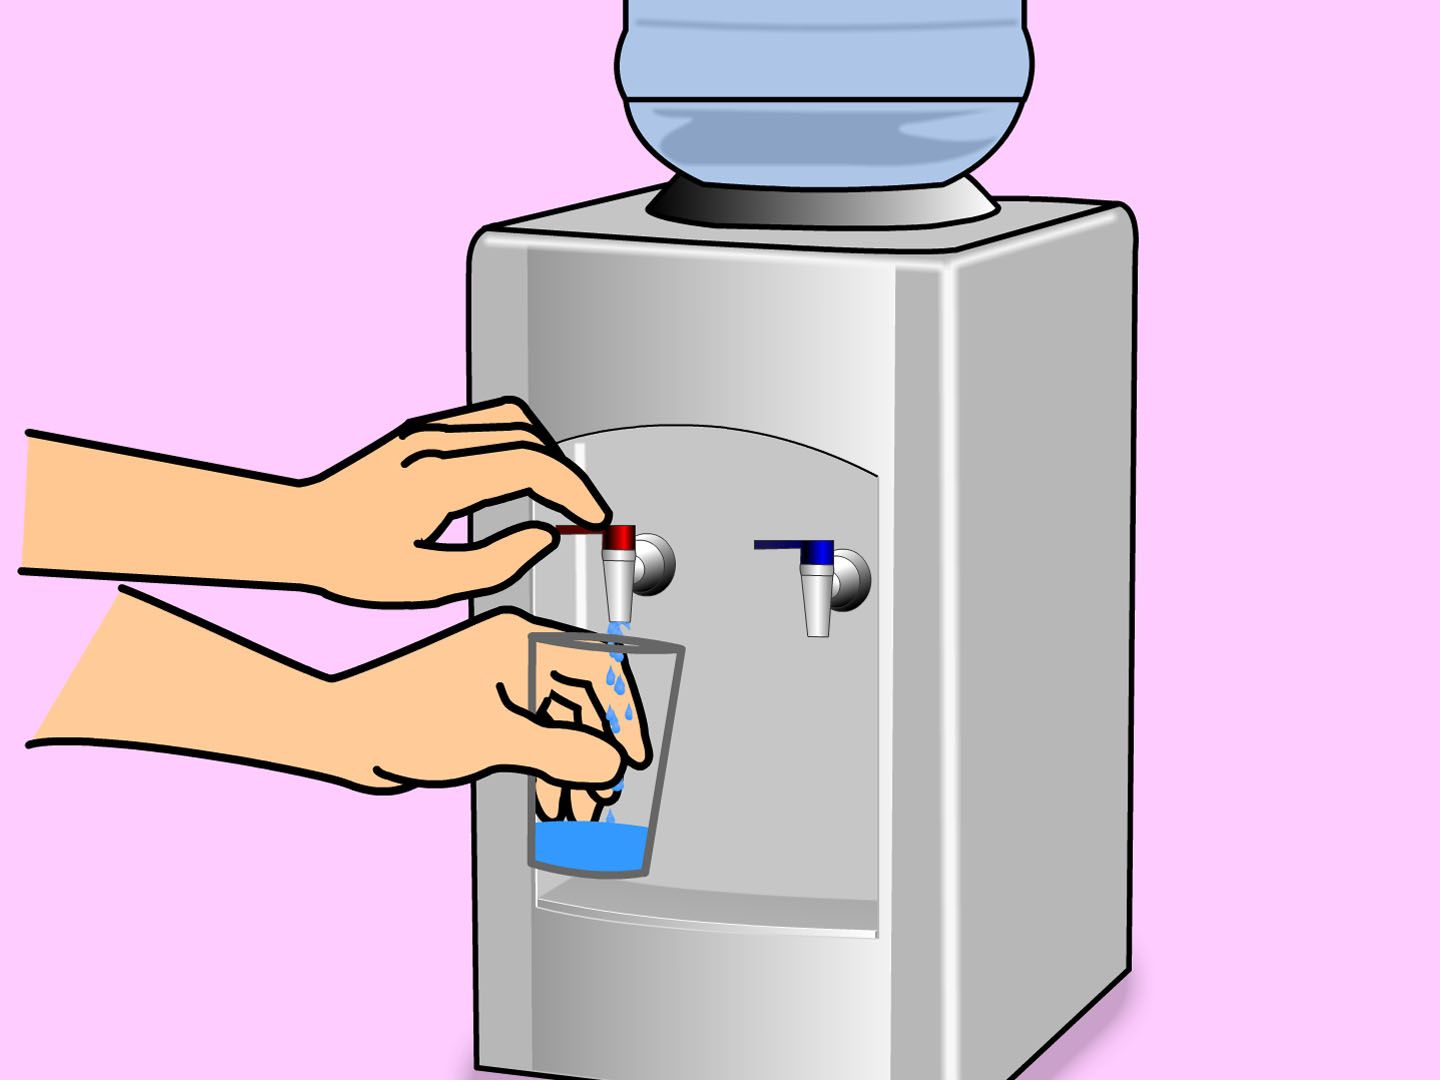 How To Clean A Water Dispenser 10 Steps With Pictures Water Dispenser Clean Water Dispenser Cleaning